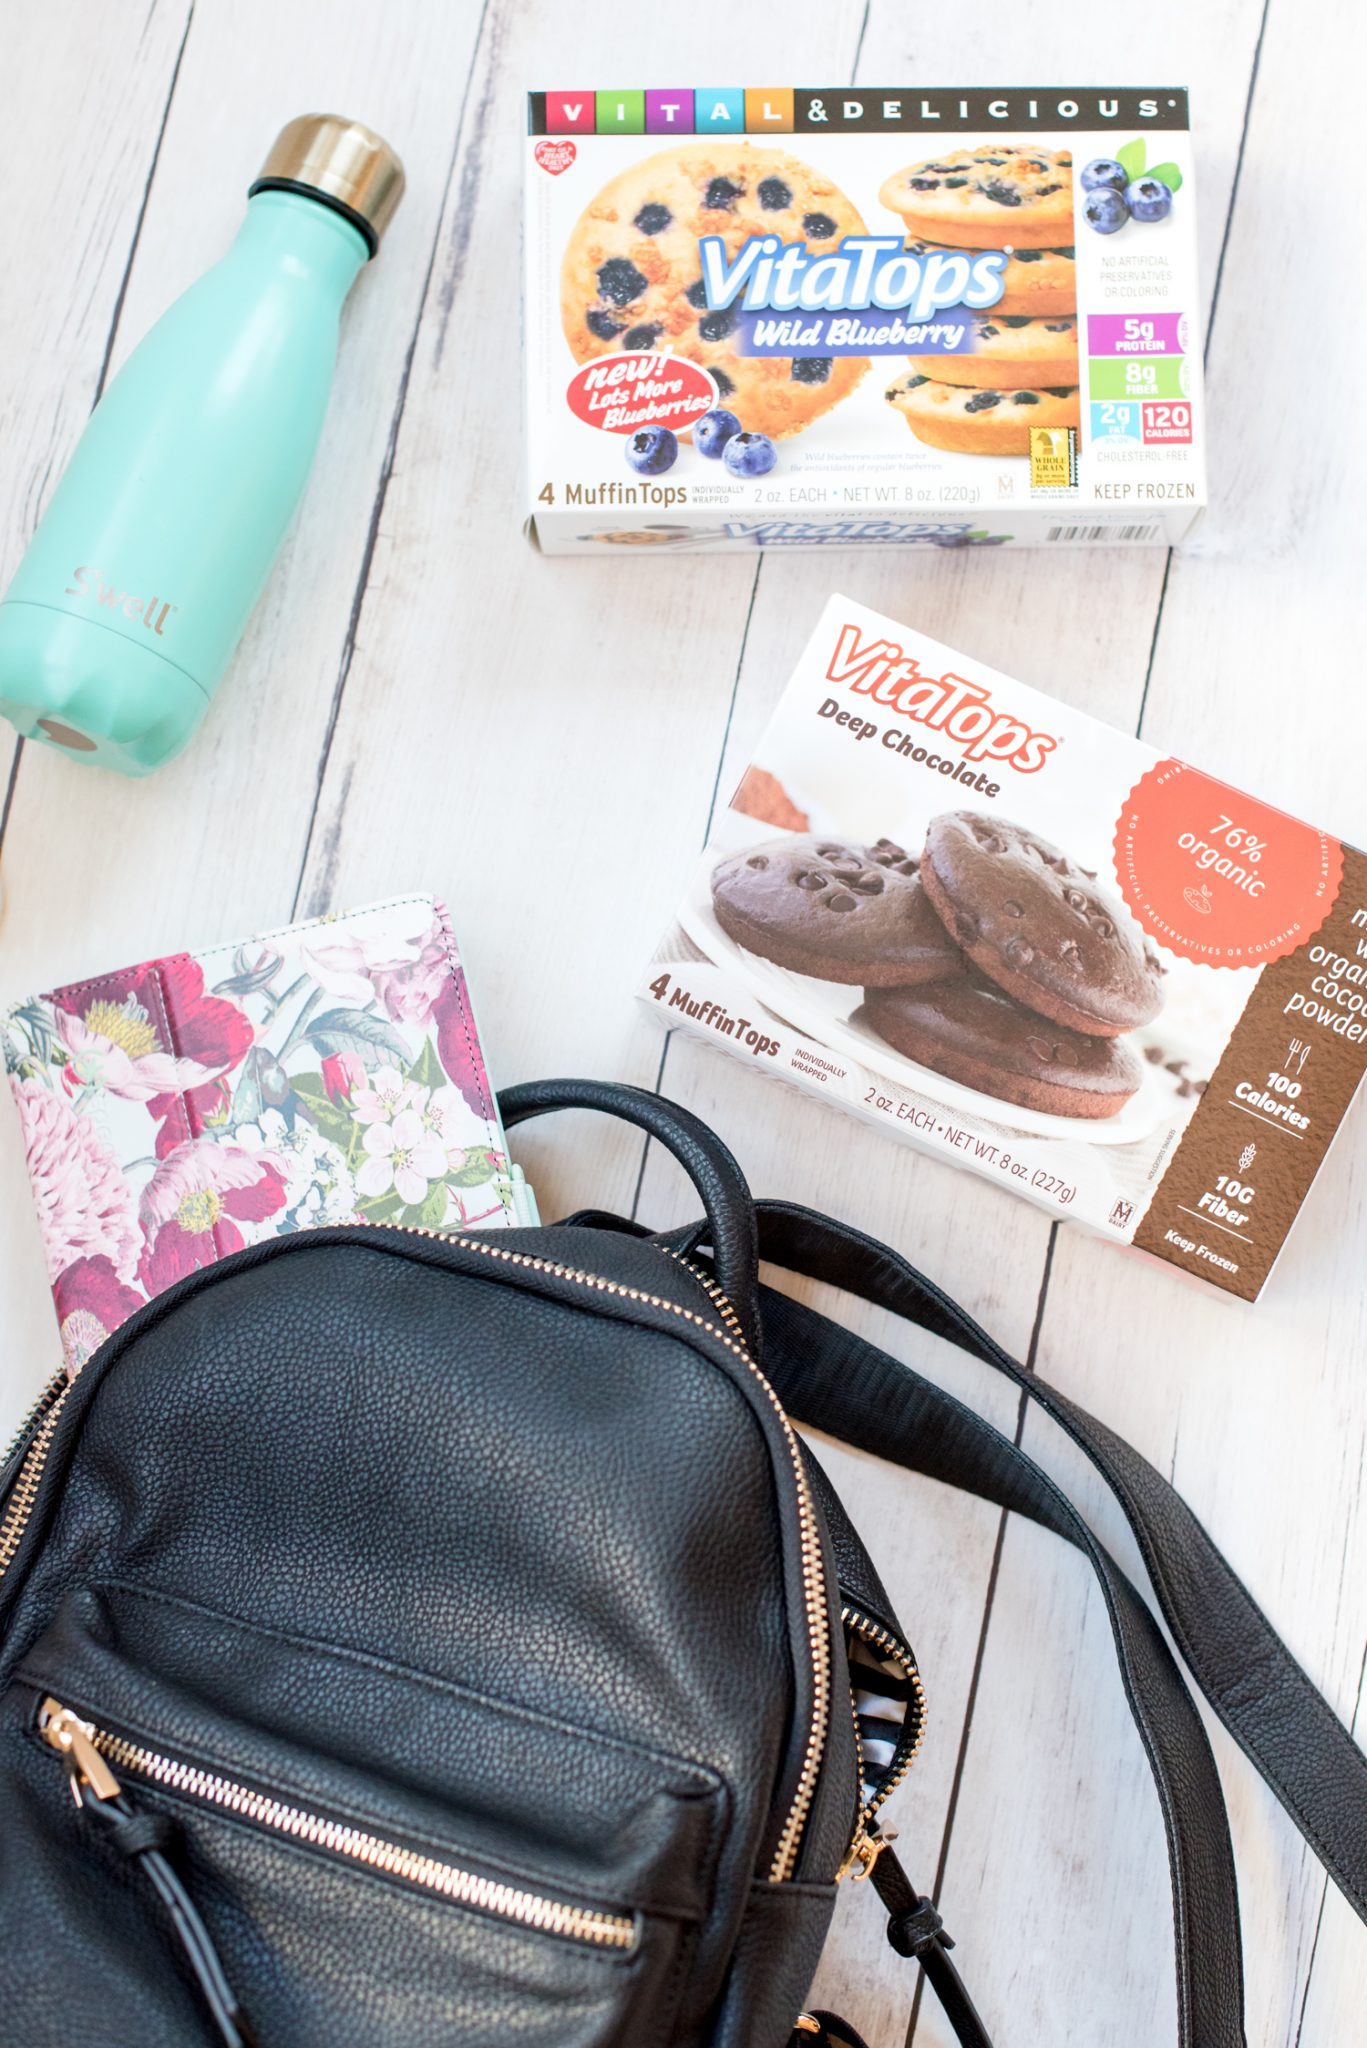 Healthy Snacks on the go with VitaTops